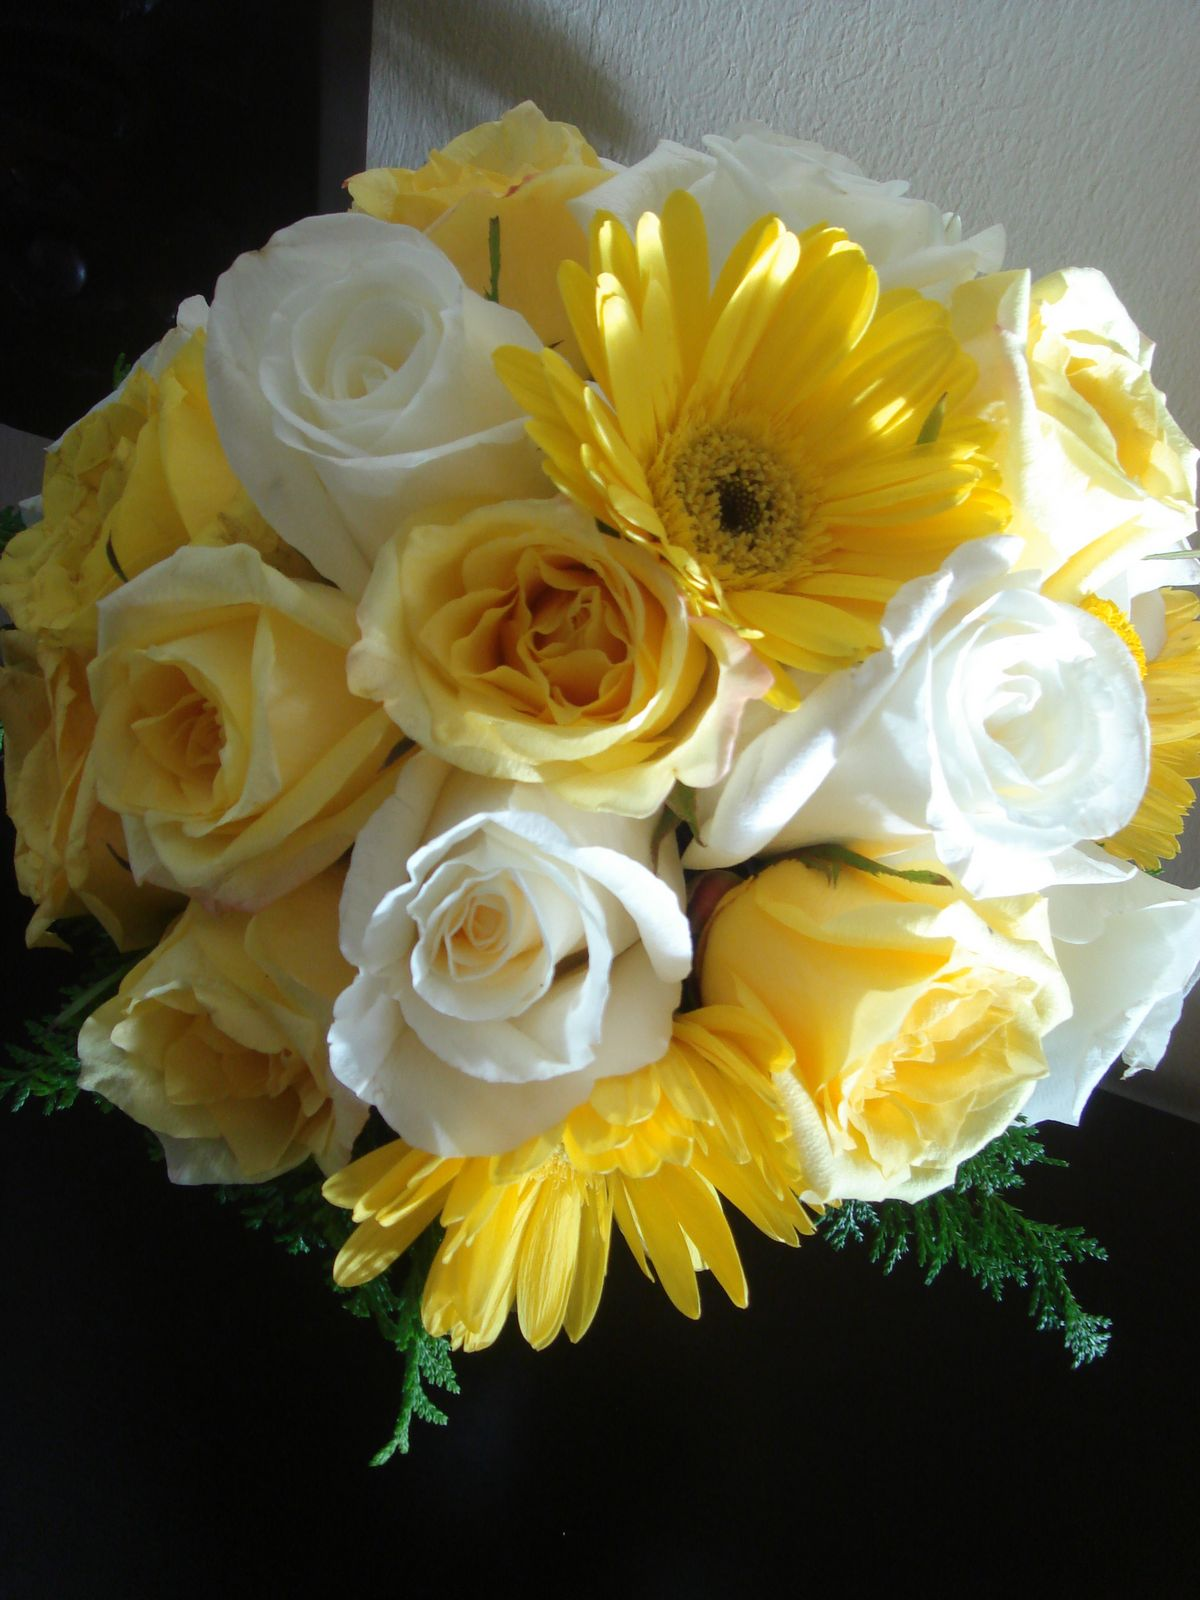 Bouquet Bridal: Yellow and White Rose Bouquets